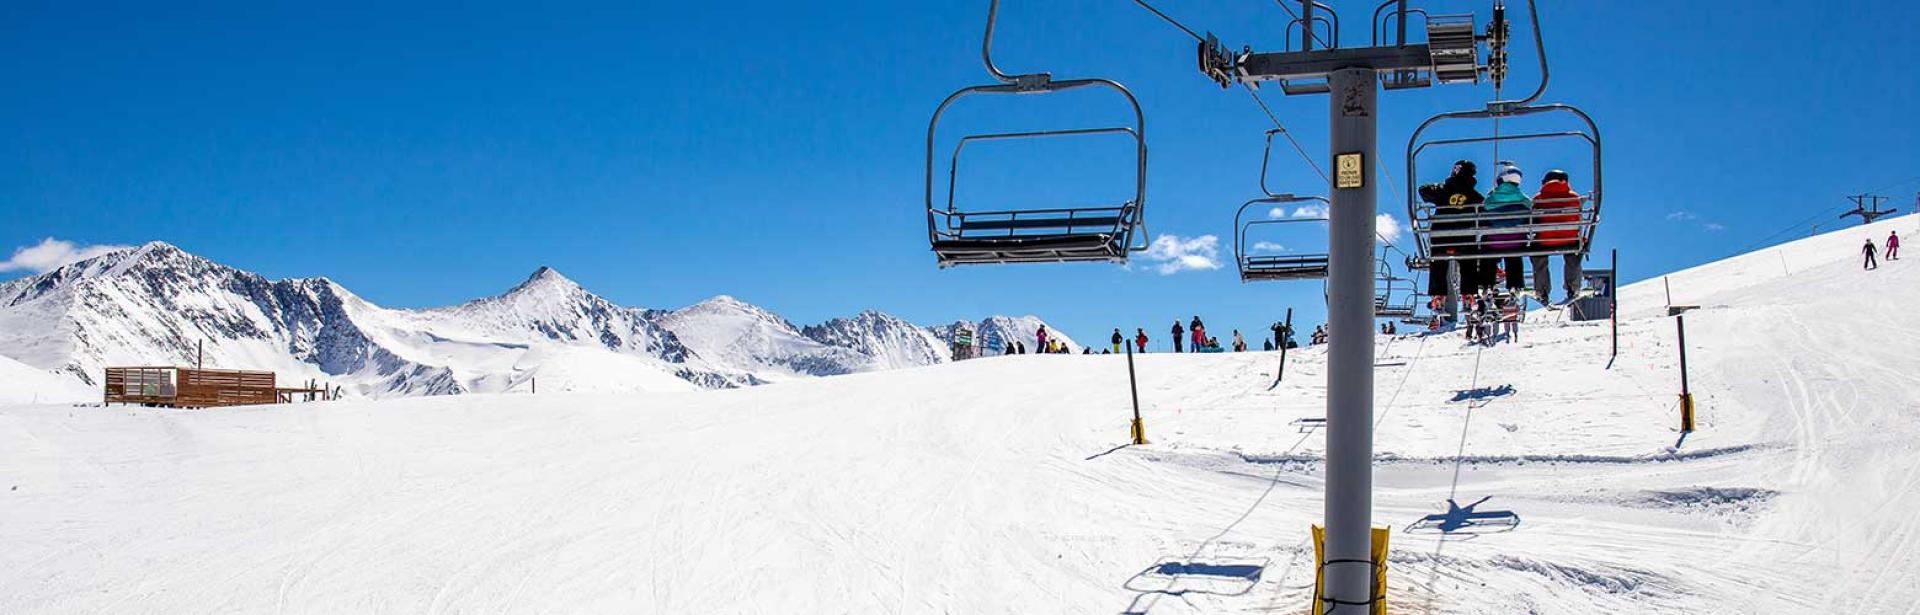 Christmas Village Ski Lift For Sale.Lift Hours Copper Mountain Resort